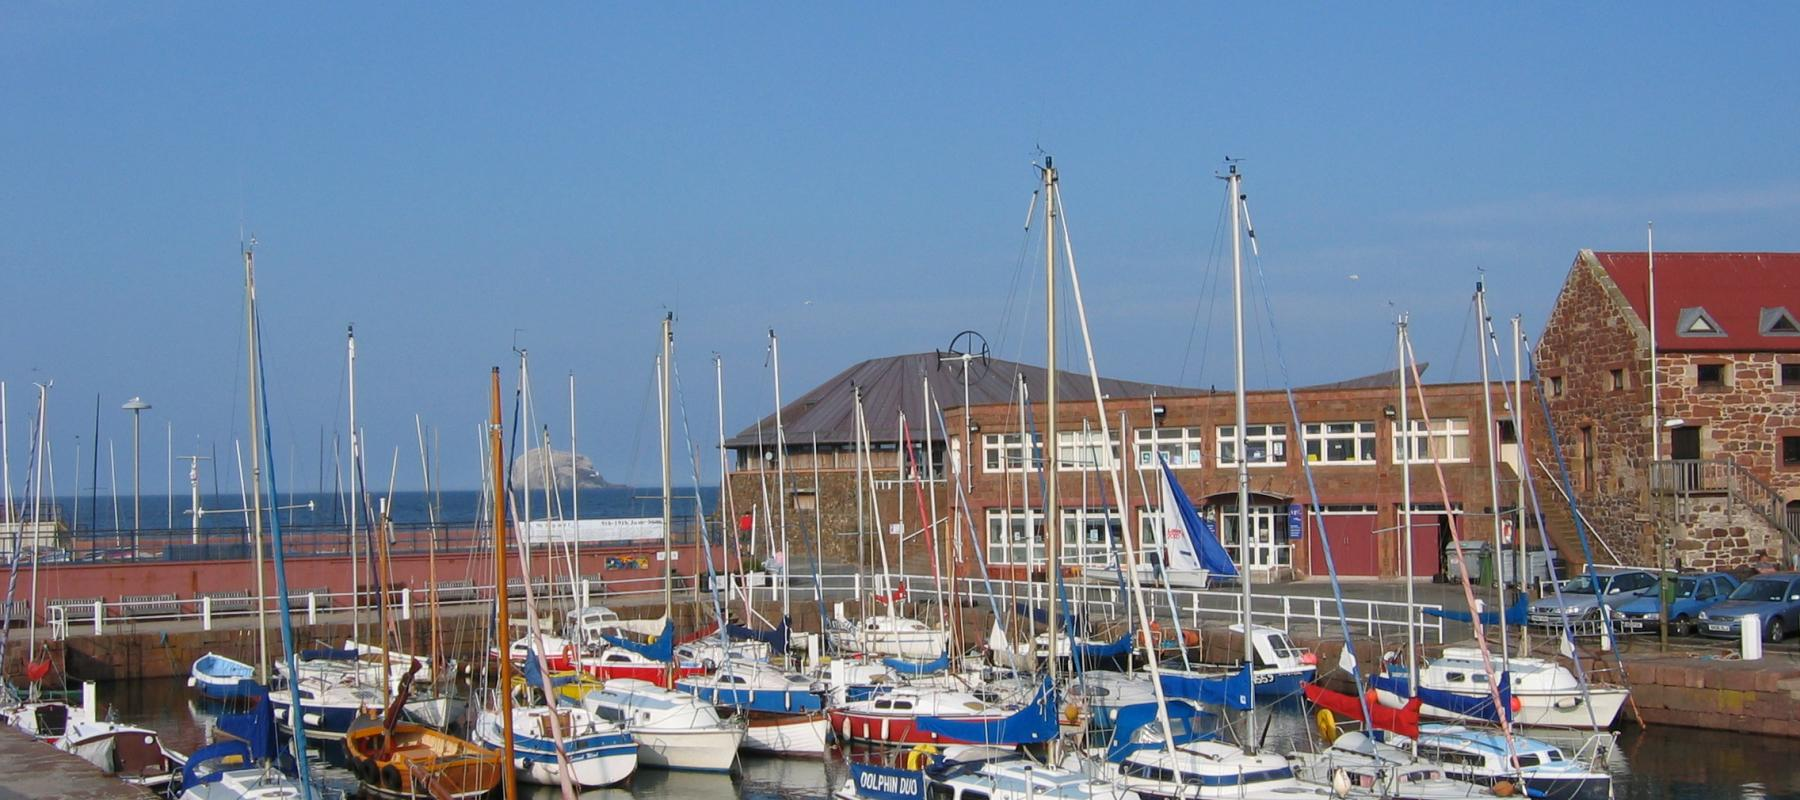 The bustling harbour at North Berwick, along the East Lothian Line, Scotland